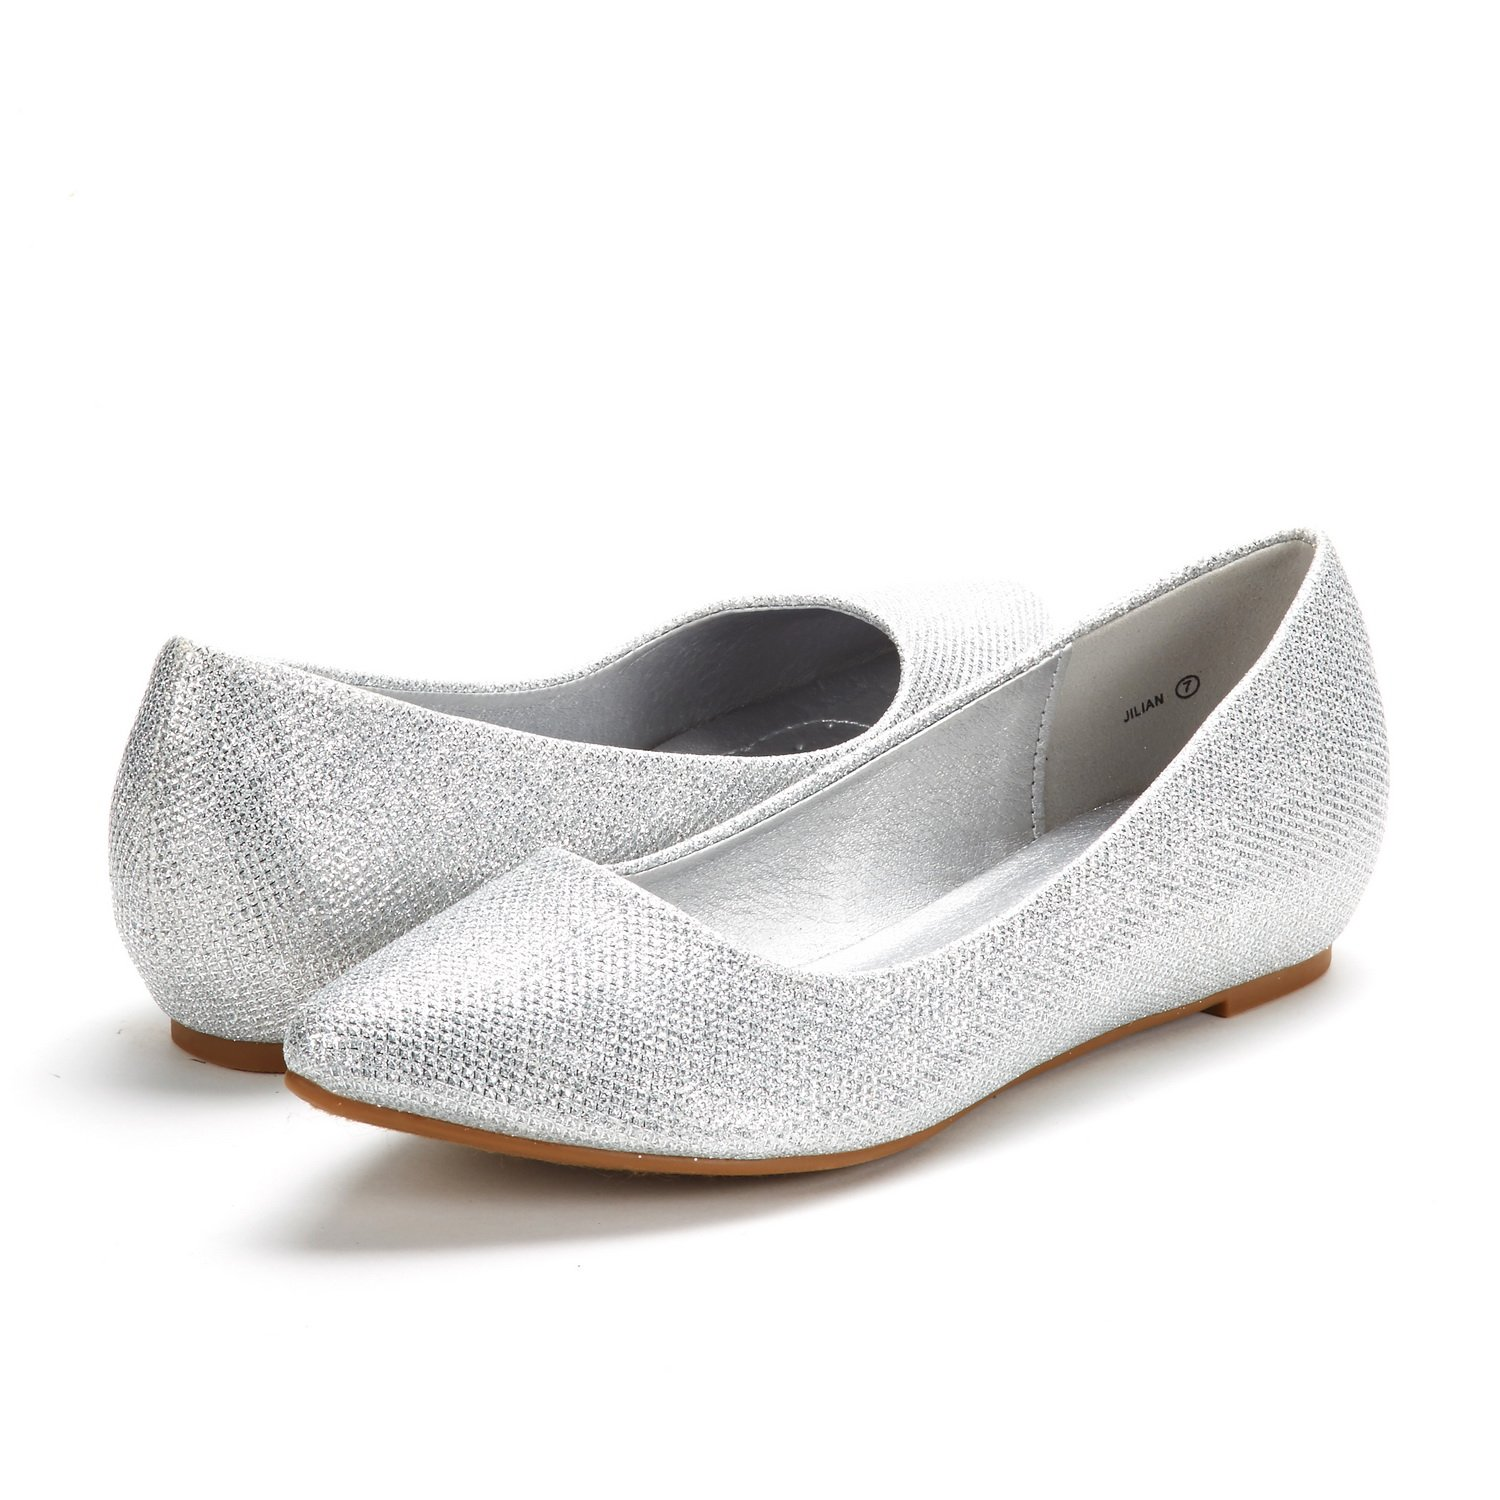 DREAM-PAIRS-Women-Low-Wedge-Flats-Ladies-Pointed-Toe-Slip-On-Comfort-Flat-Shoes thumbnail 19